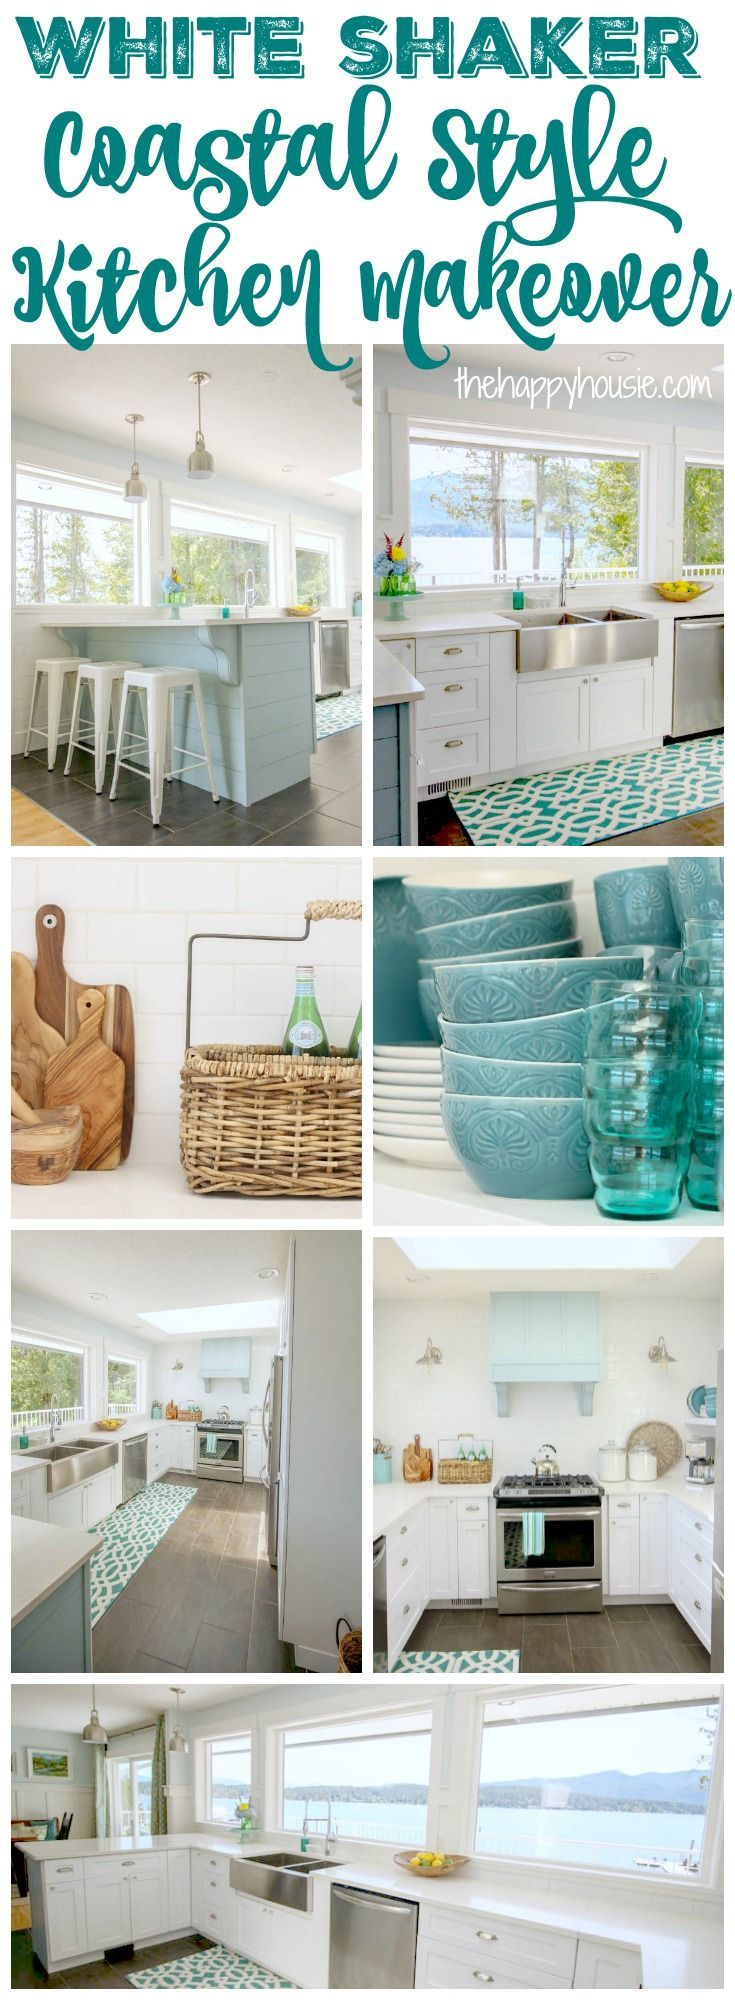 830 best Kitchen Decor and Remodeling Ideas images on Pinterest ...